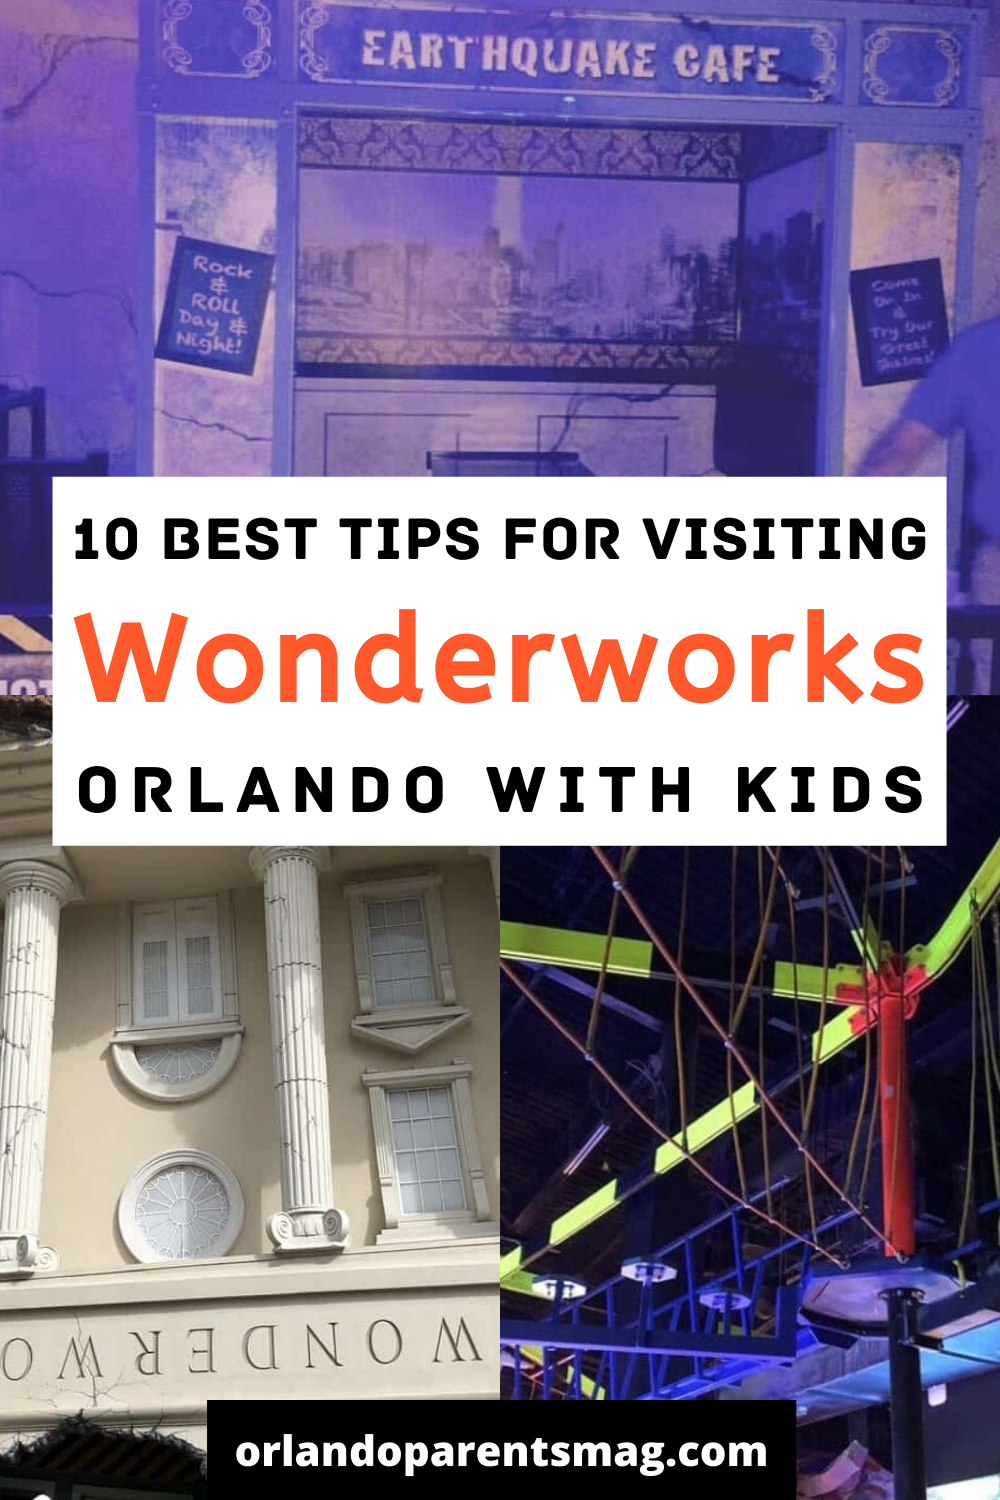 Orlando Crayola Experience Is Just One Of The Many Family Friendly Activities Outside Of Amus Crayola Experience Orlando Florida Vacation Best Family Vacations